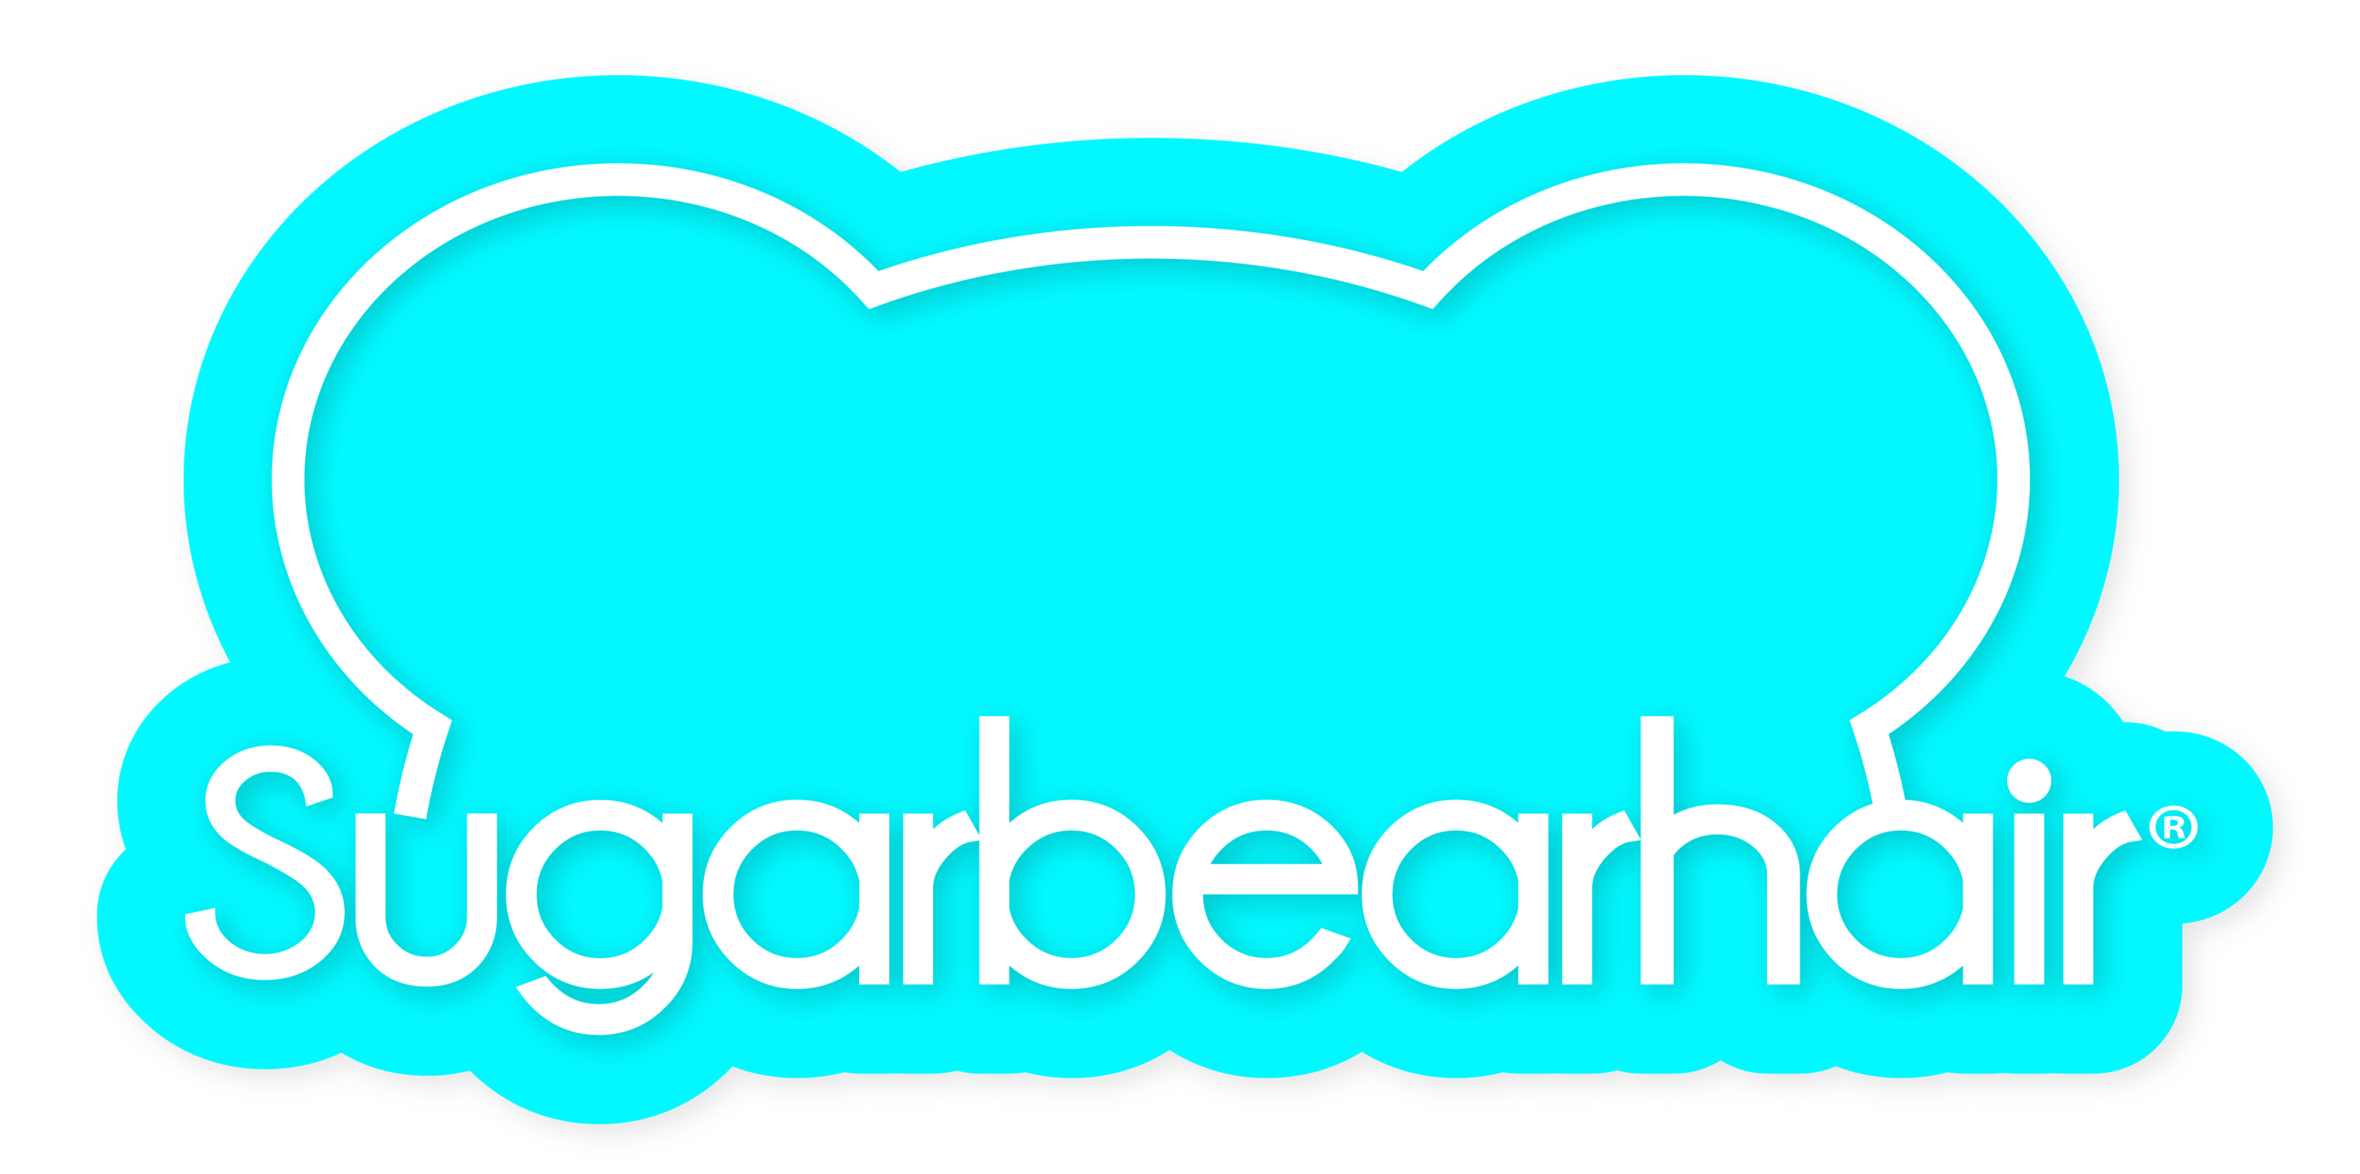 Sugar Bear Hair coupon codes